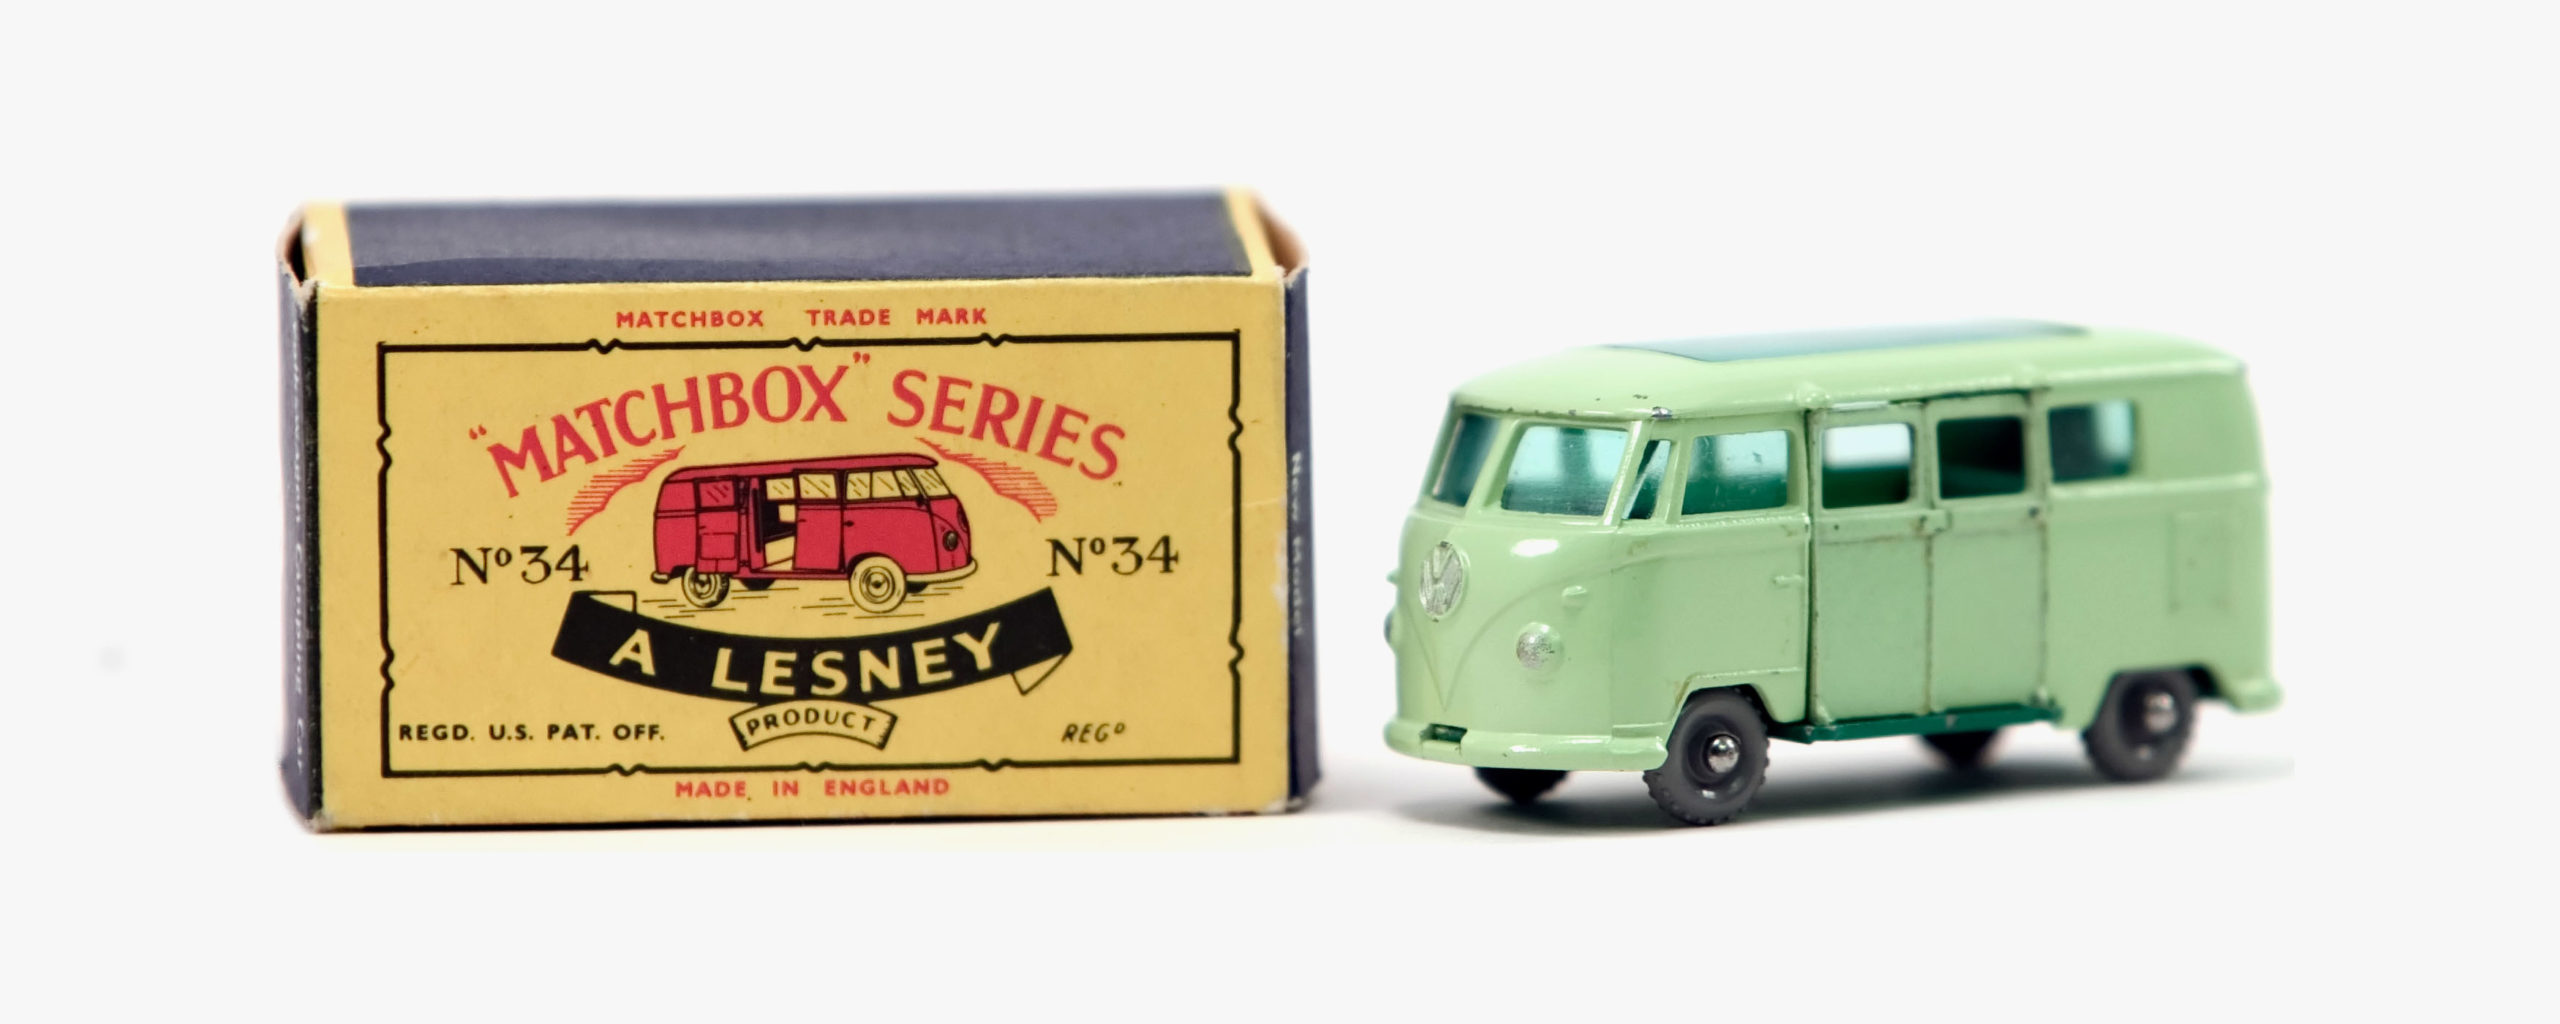 An antique Matchbox Series box with green VW bus toy